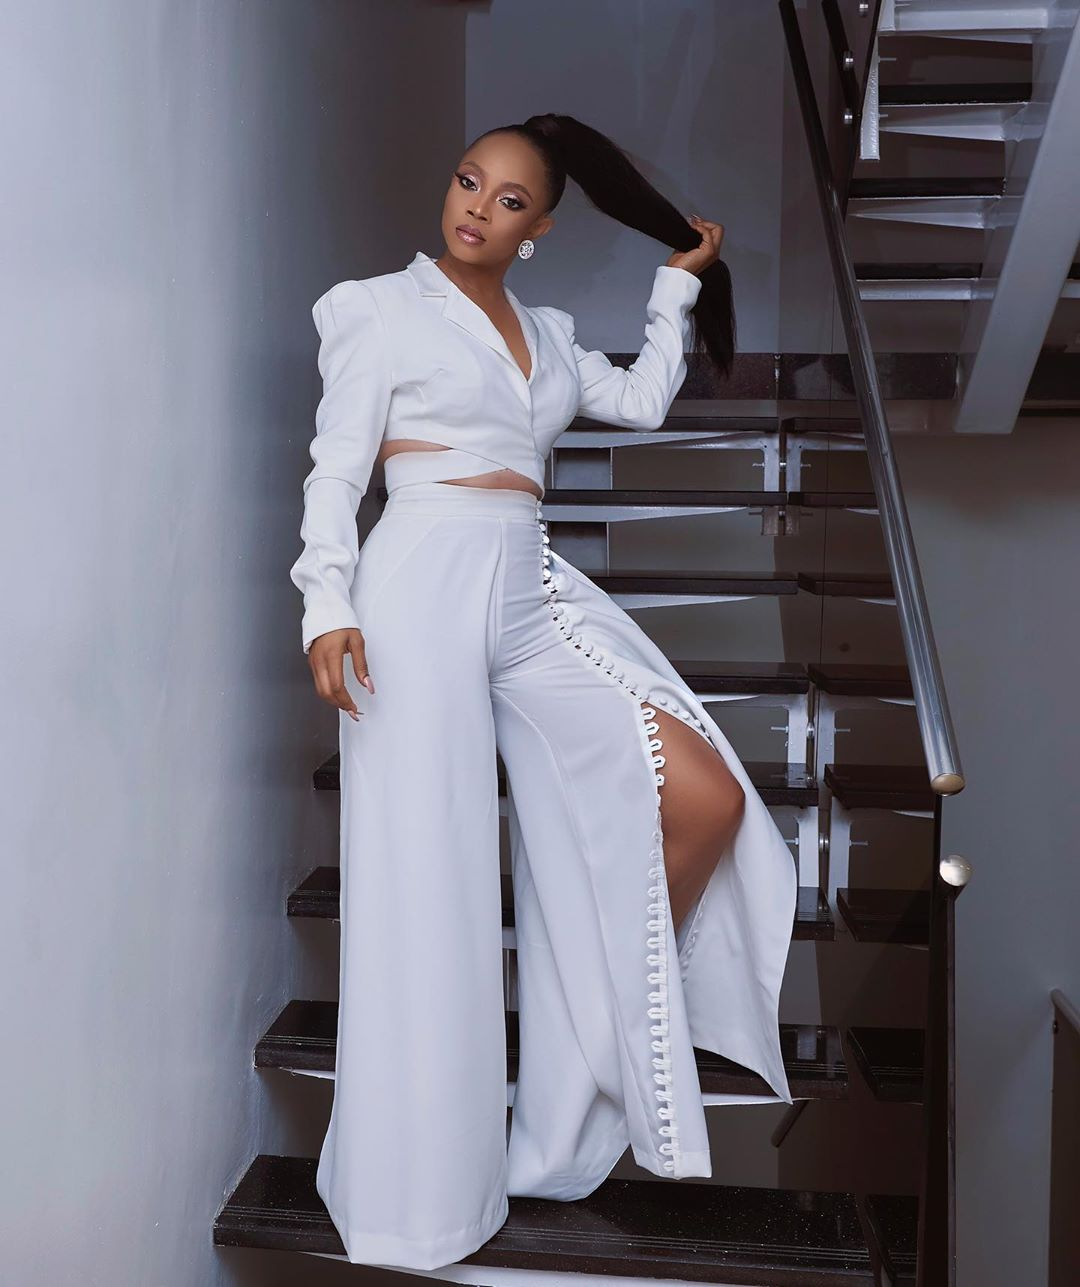 toke-makinwa-style-temple-all-white-outfit-top-nigerian-women